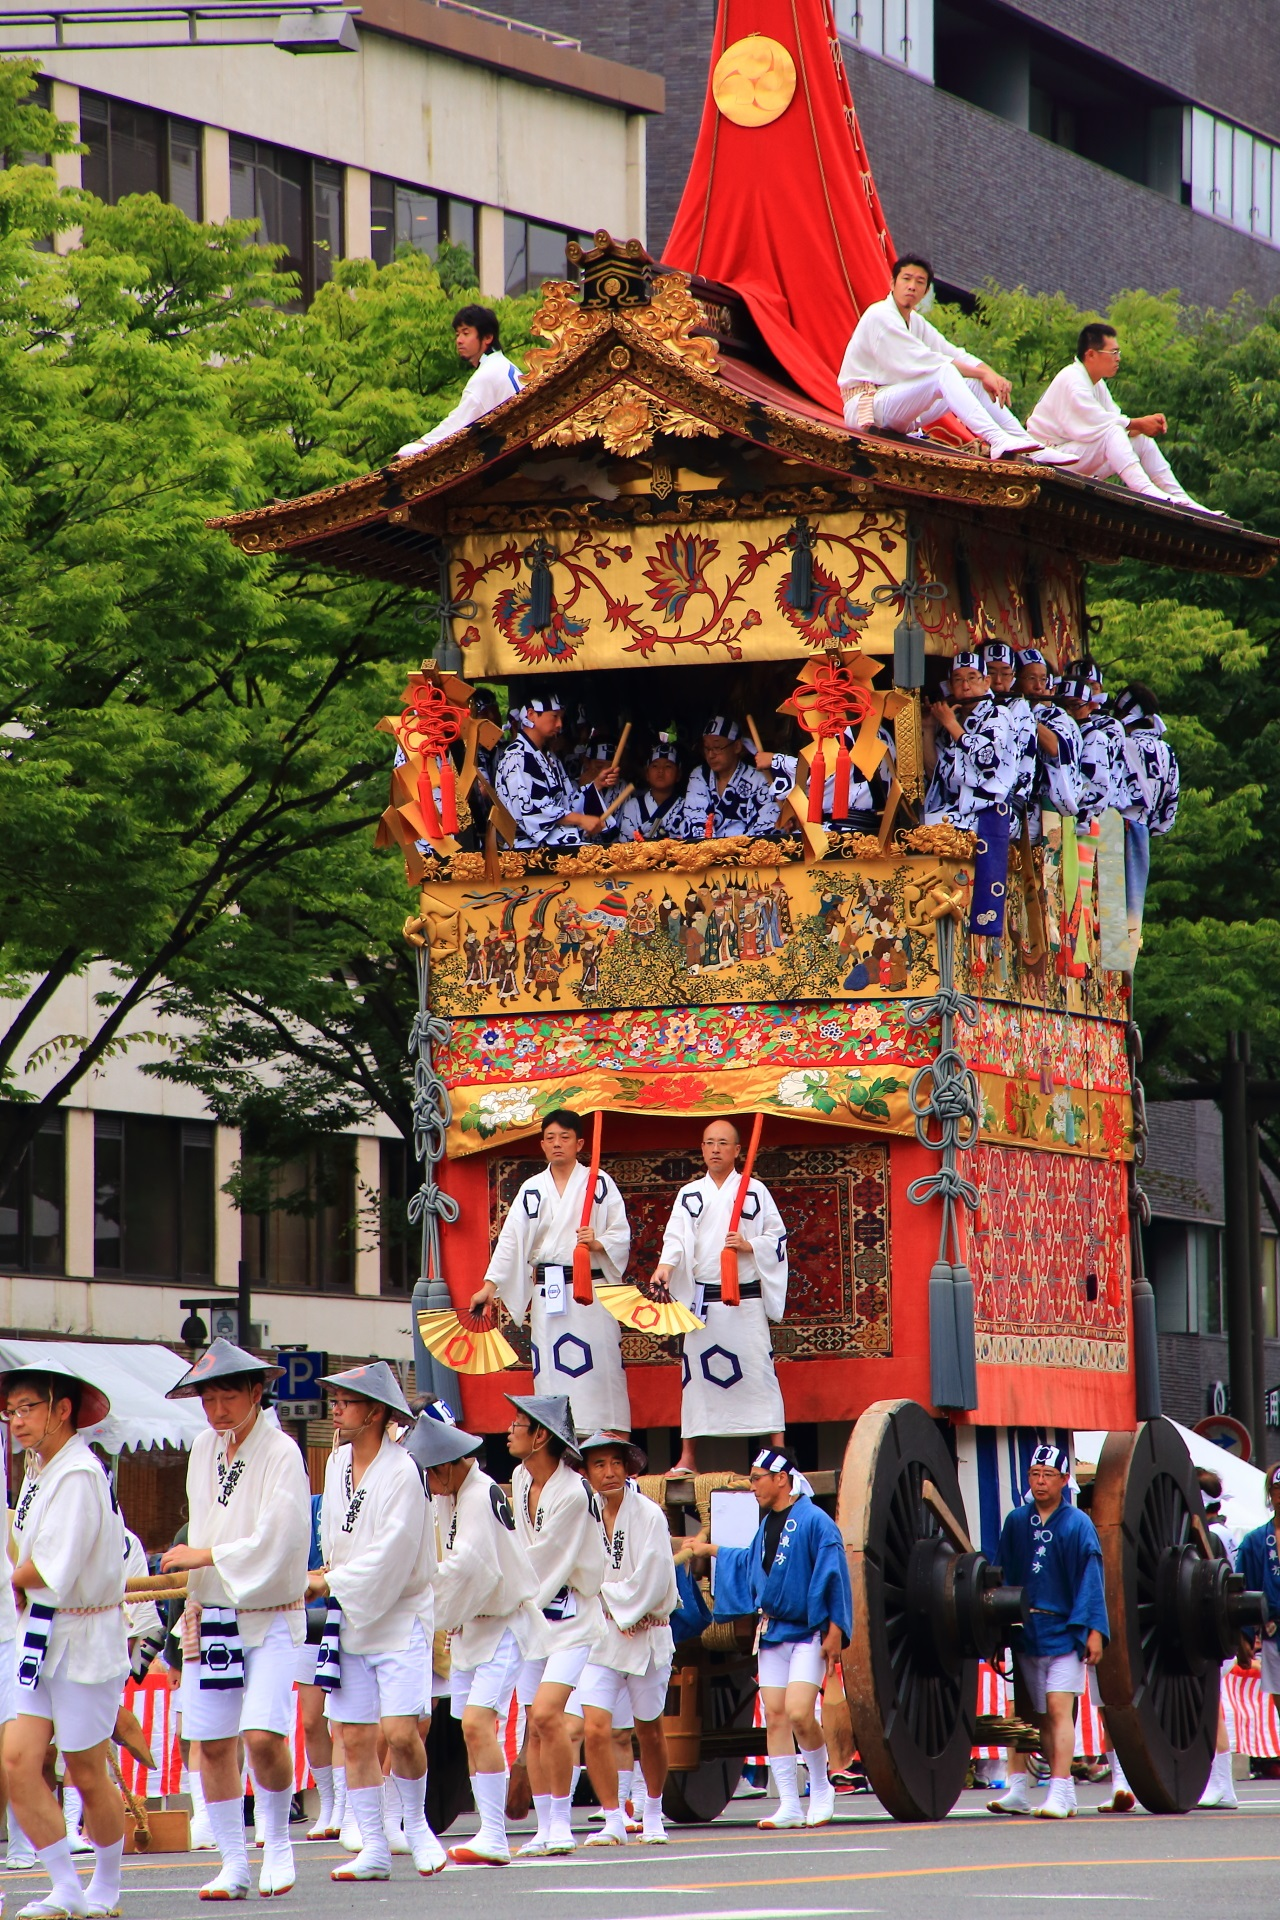 Kita-Kannon-Yama appeared in the Yama-Hoko Junko Cruise of the Kyoto Gion-Matsuri Festival